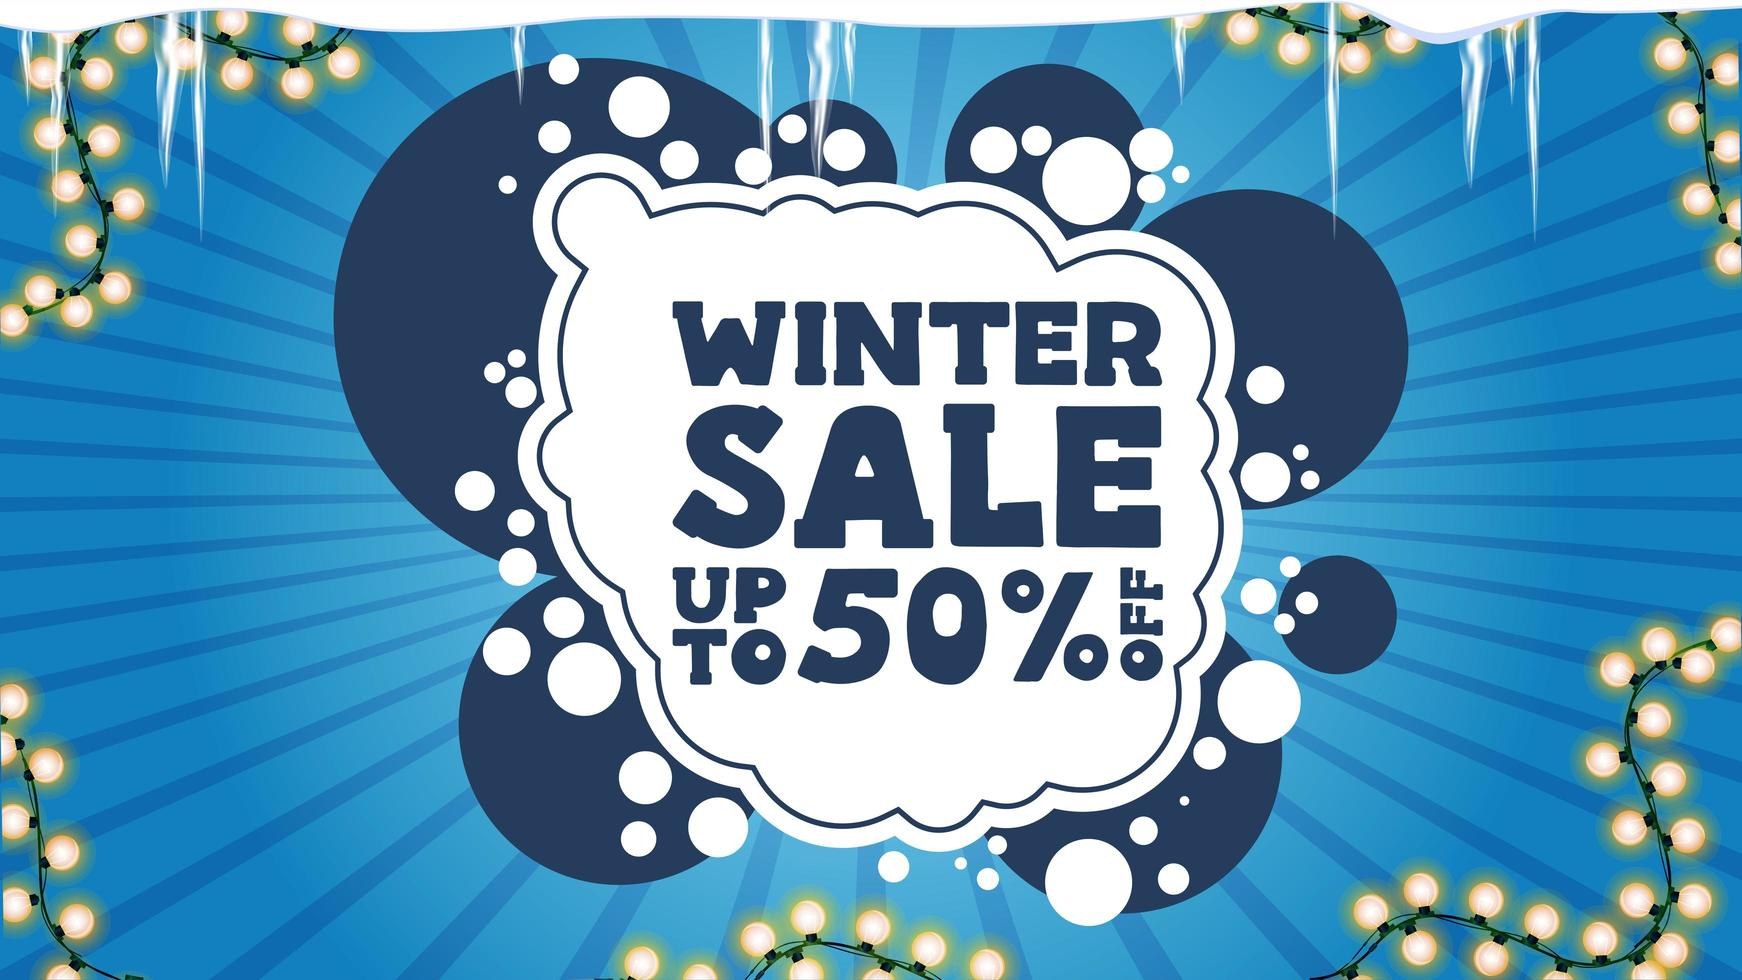 Winter sale, discount banner with garland and icicles vector